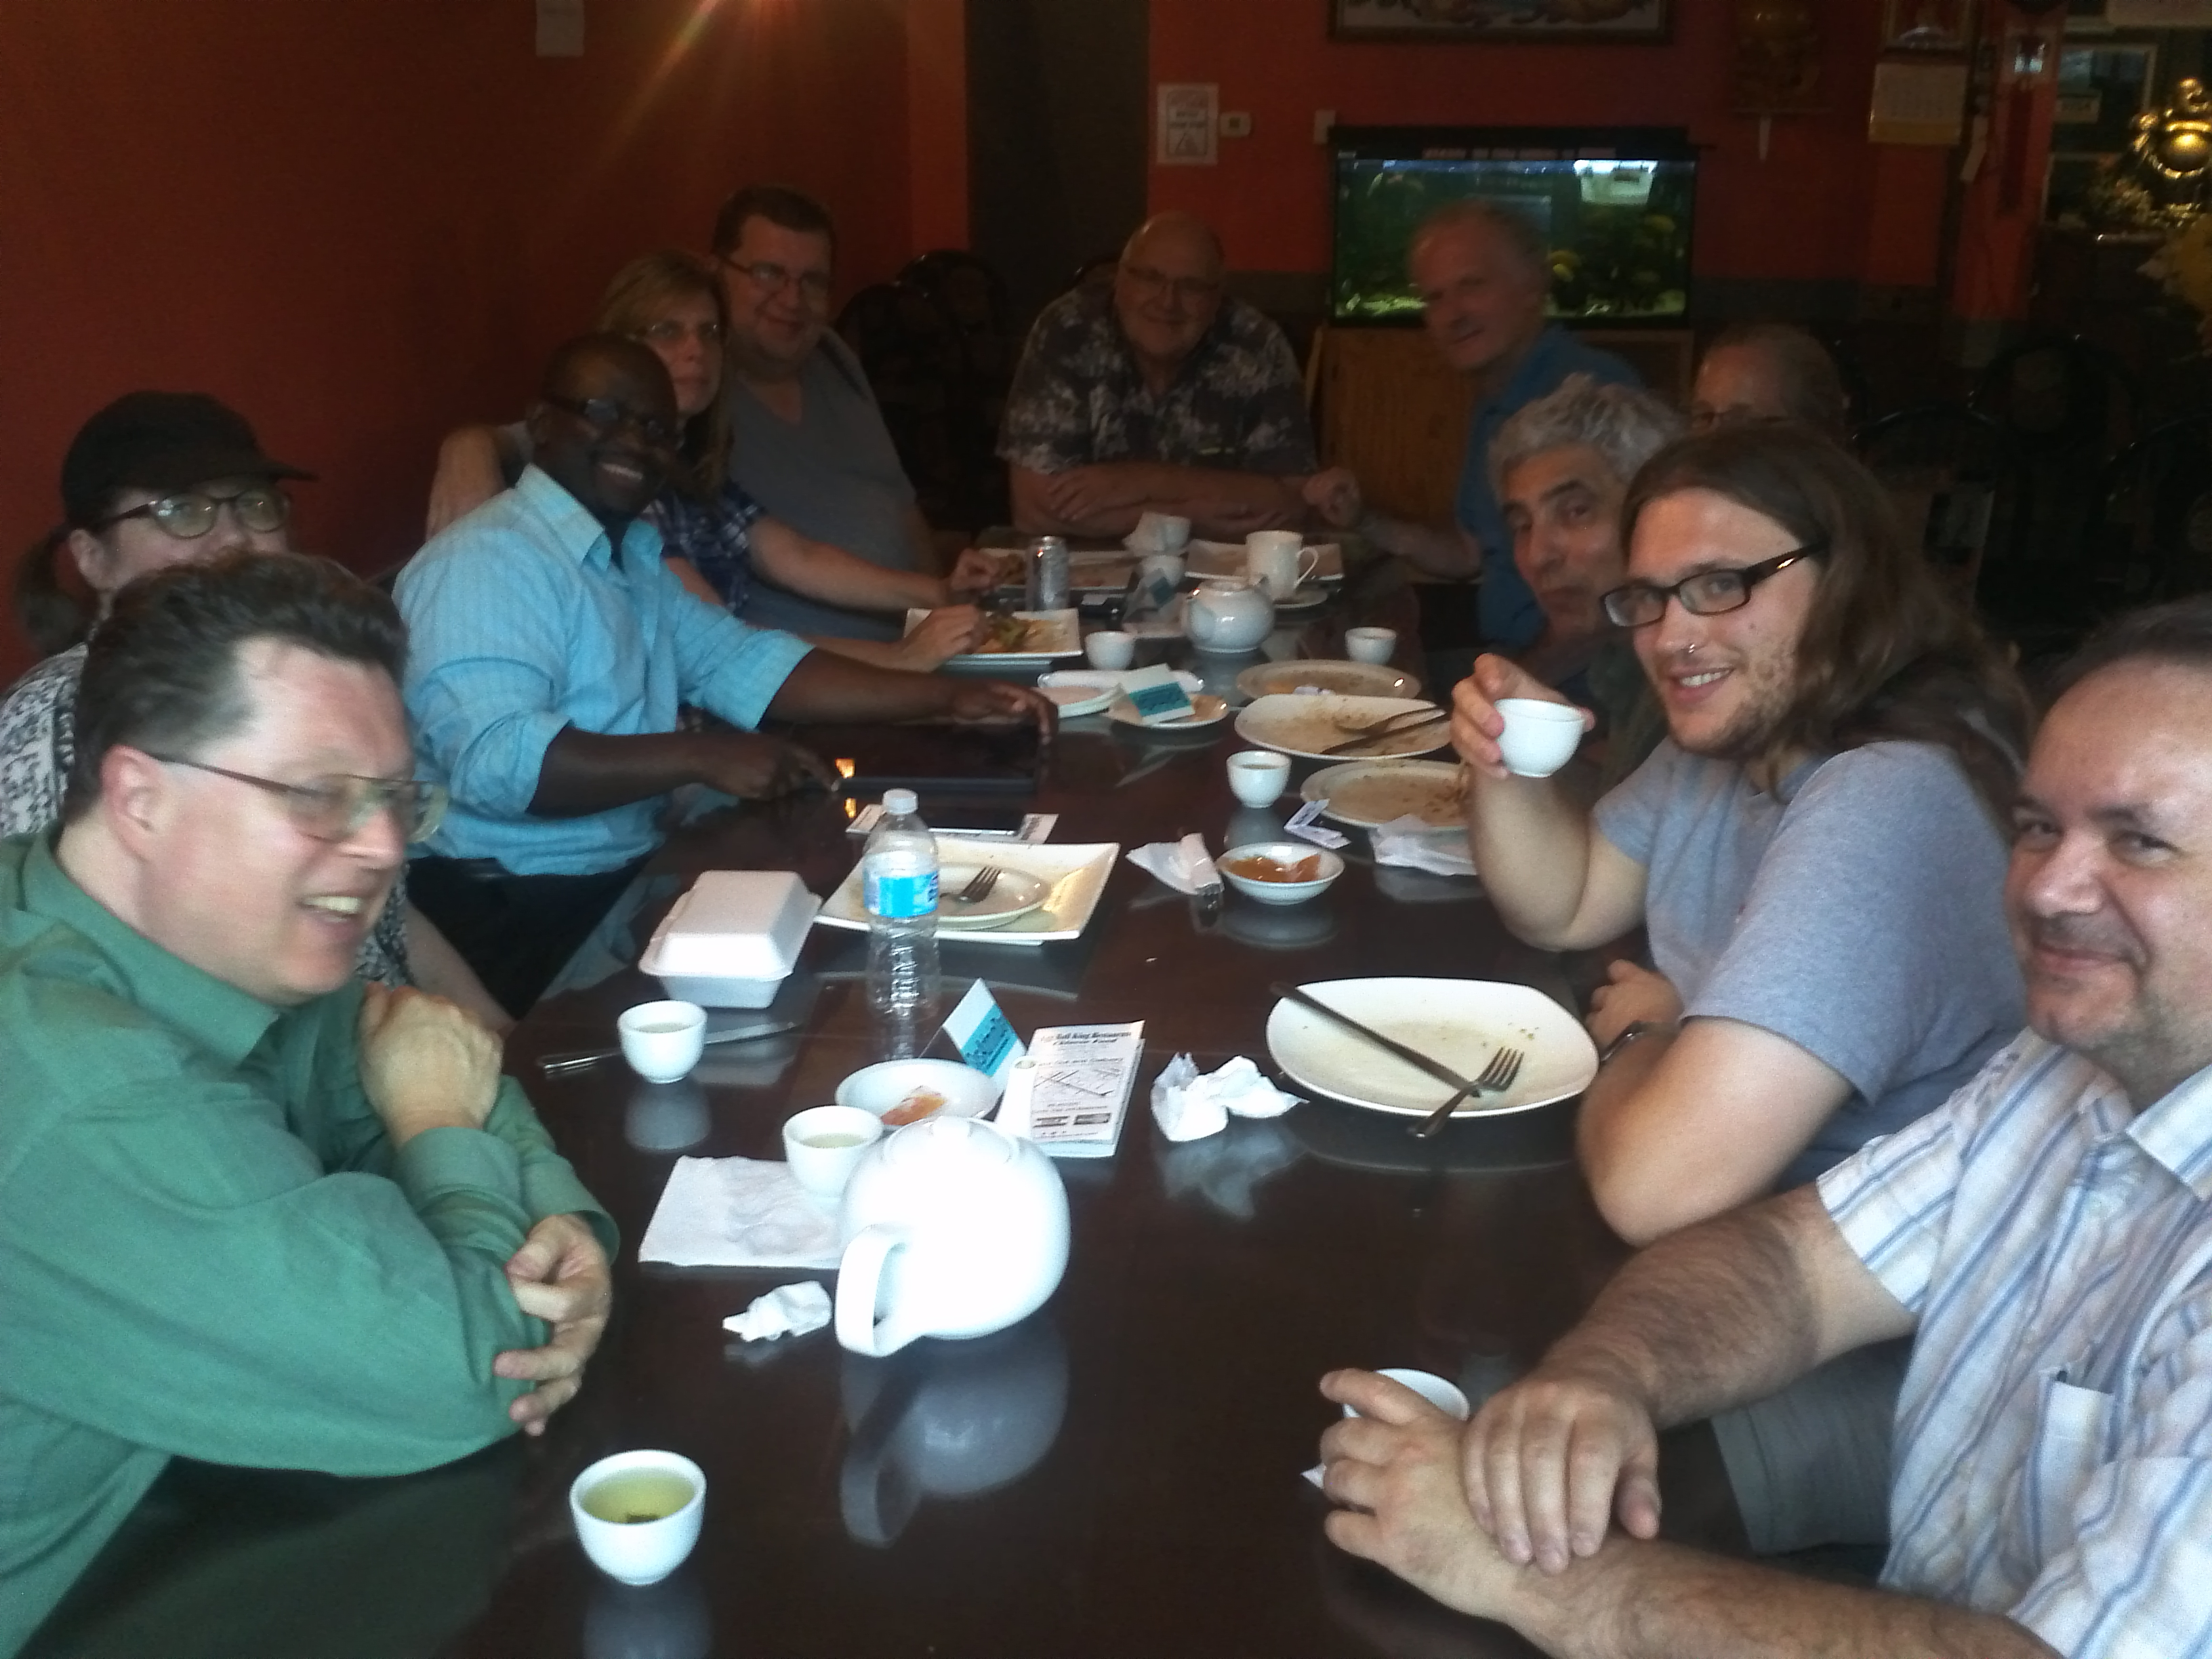 System Administrators at the Egg Roll King Restaurant